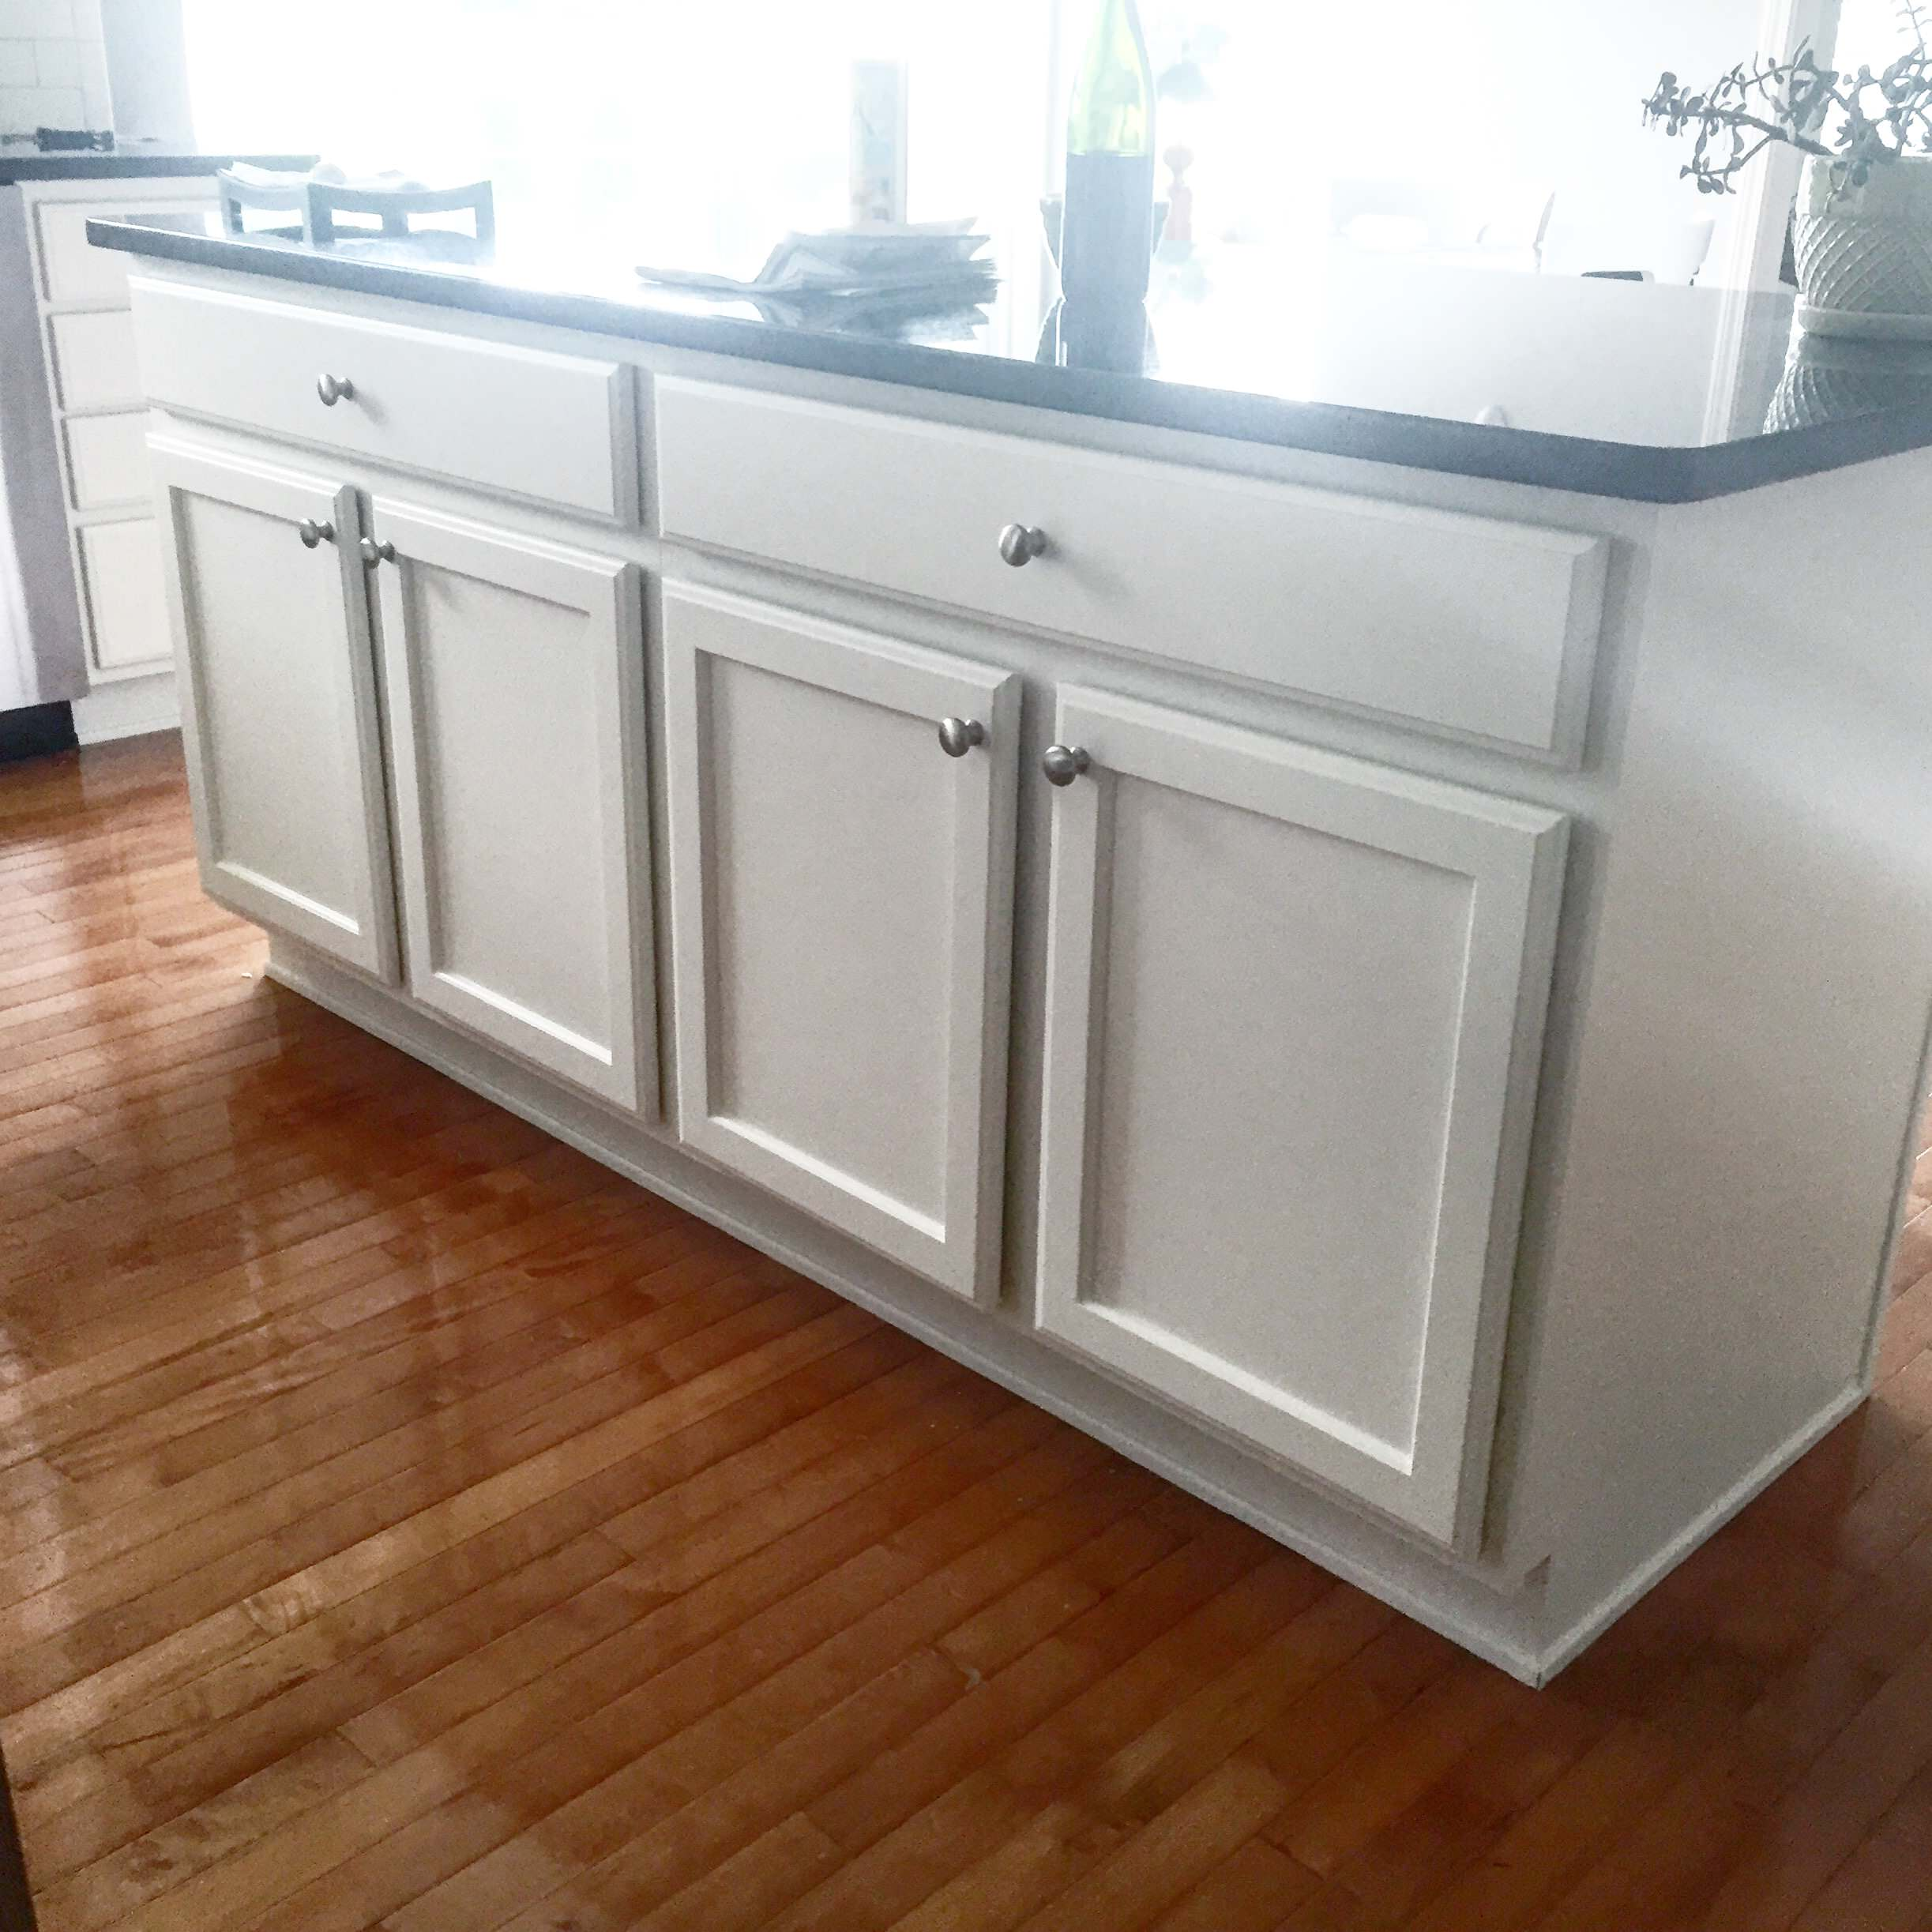 Fresh and clean white cabinets